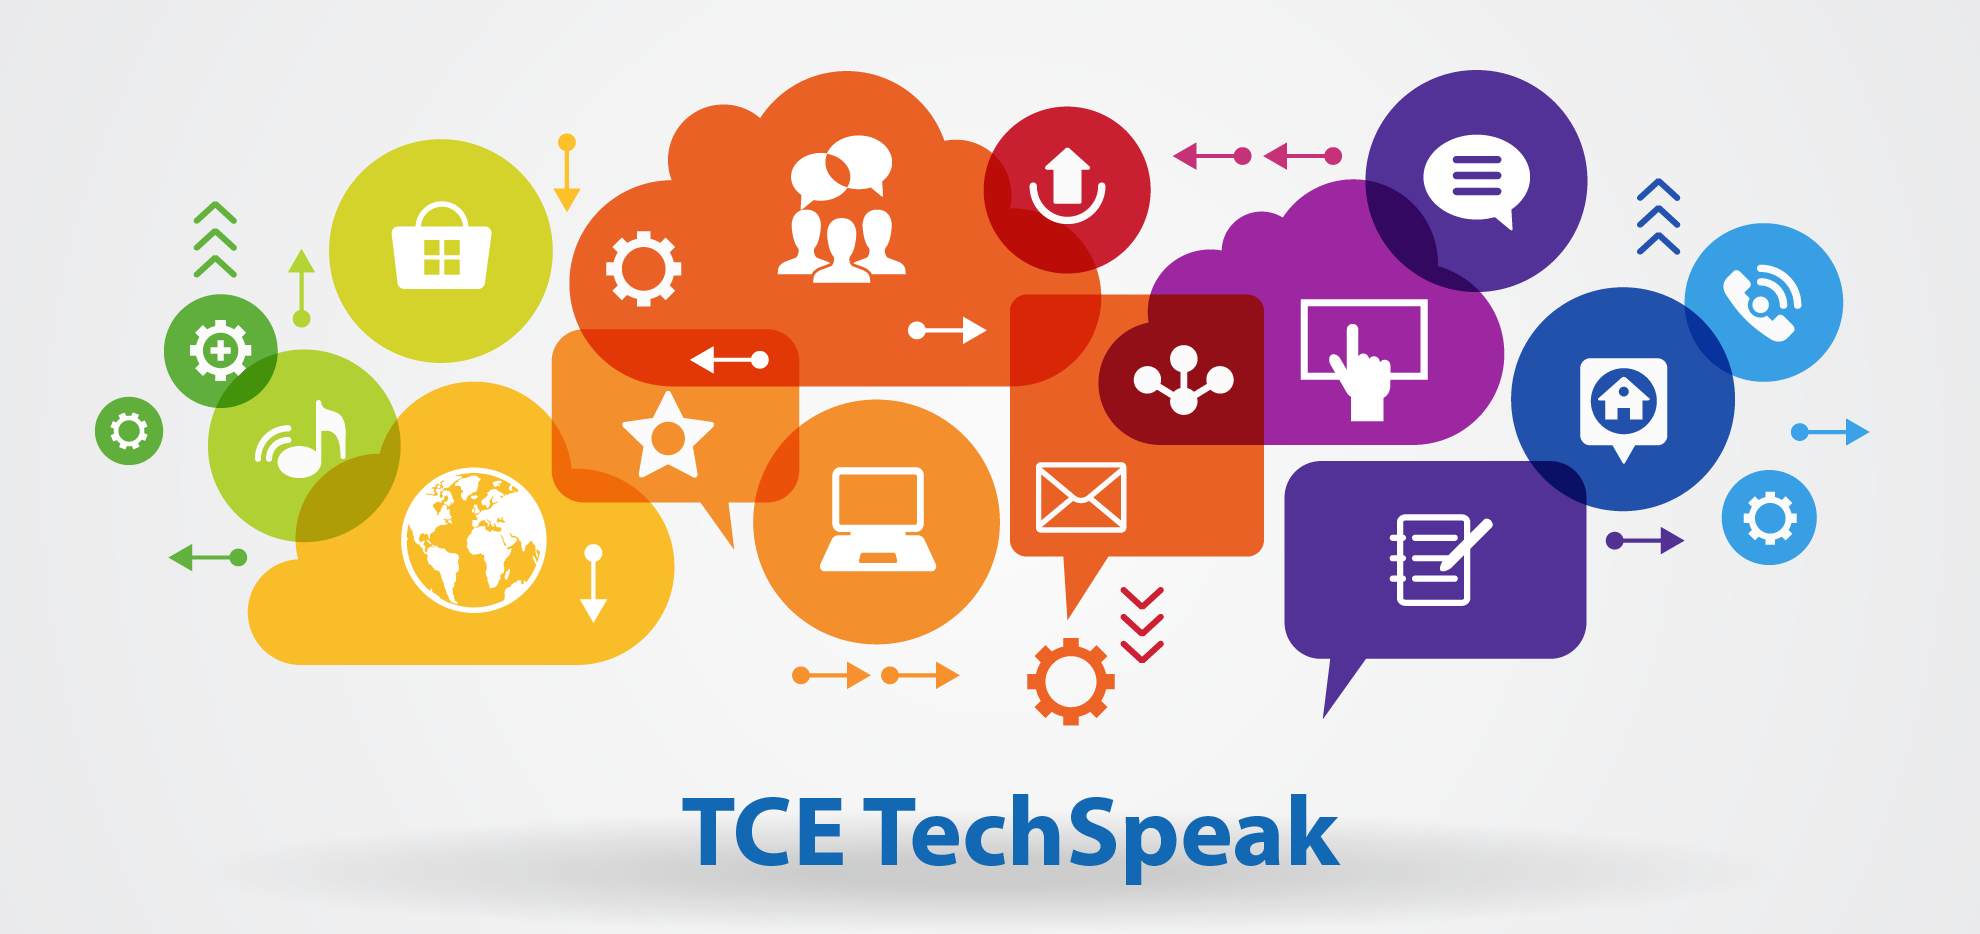 Welcome to TCETechSpeak - The official blog of Tata Consulting Engineers Limited (TCE)